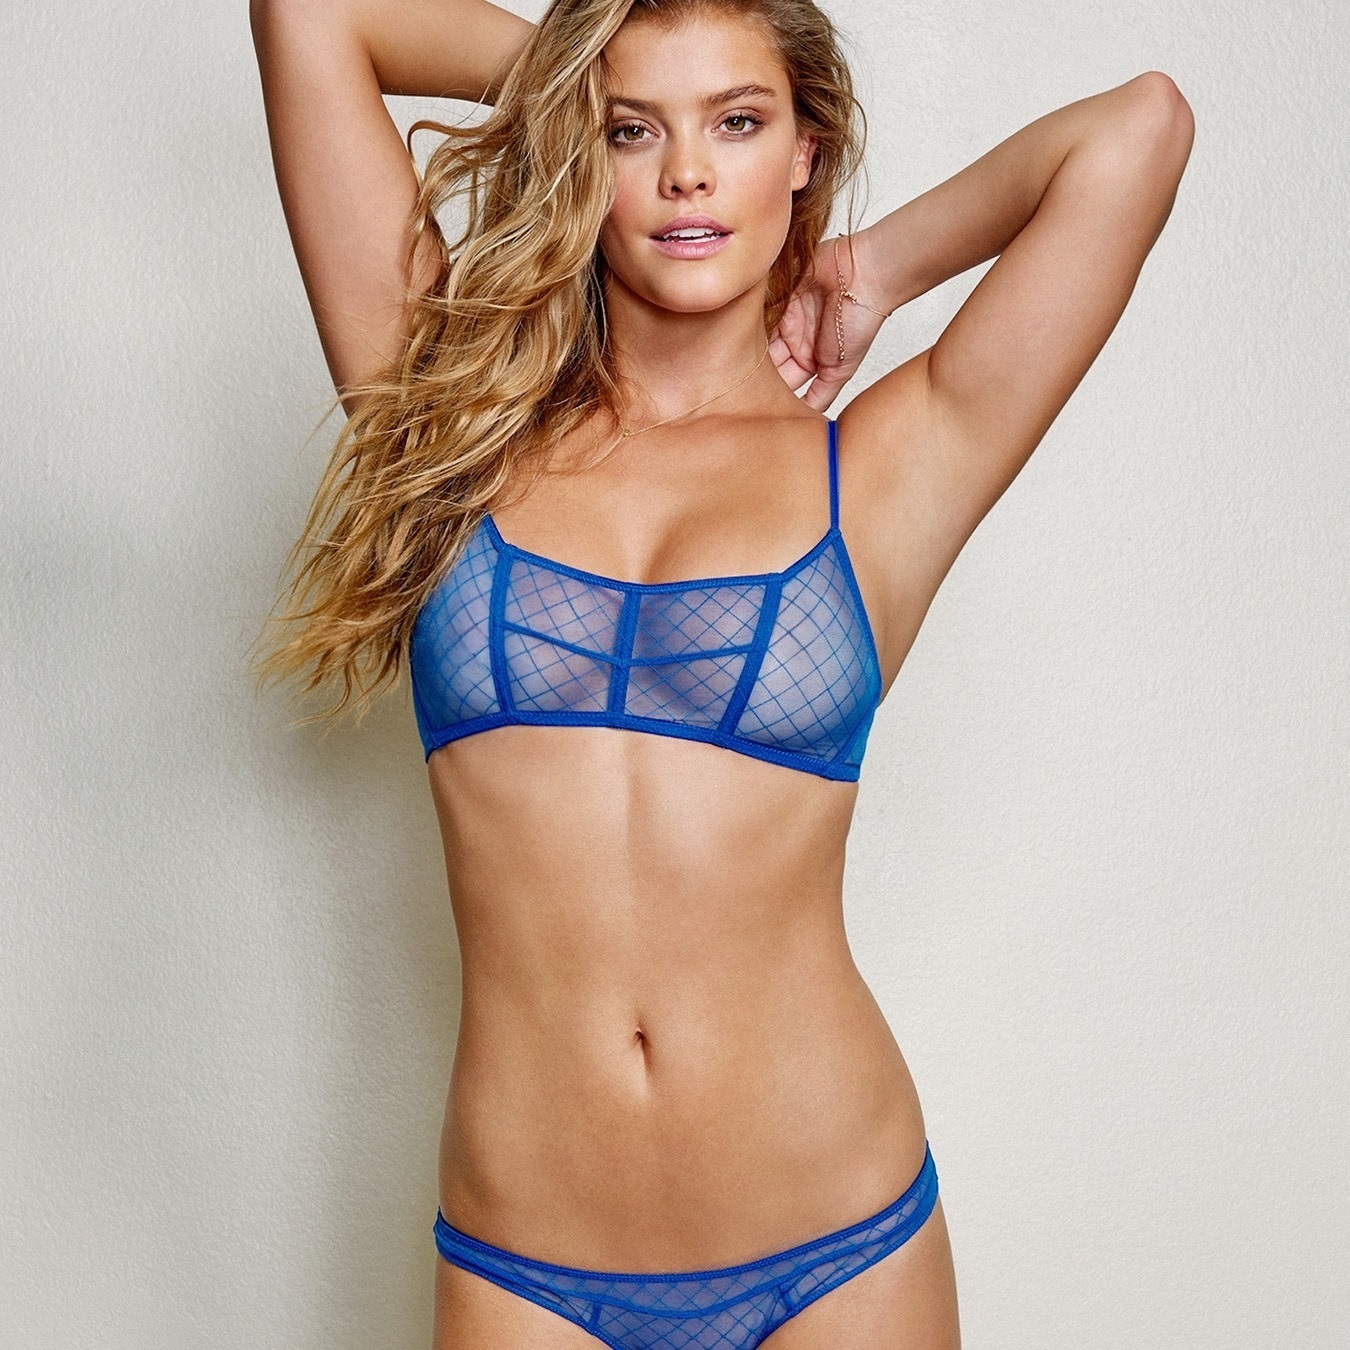 Nina Agdal Beach Bunny Love Haus Collection Beach